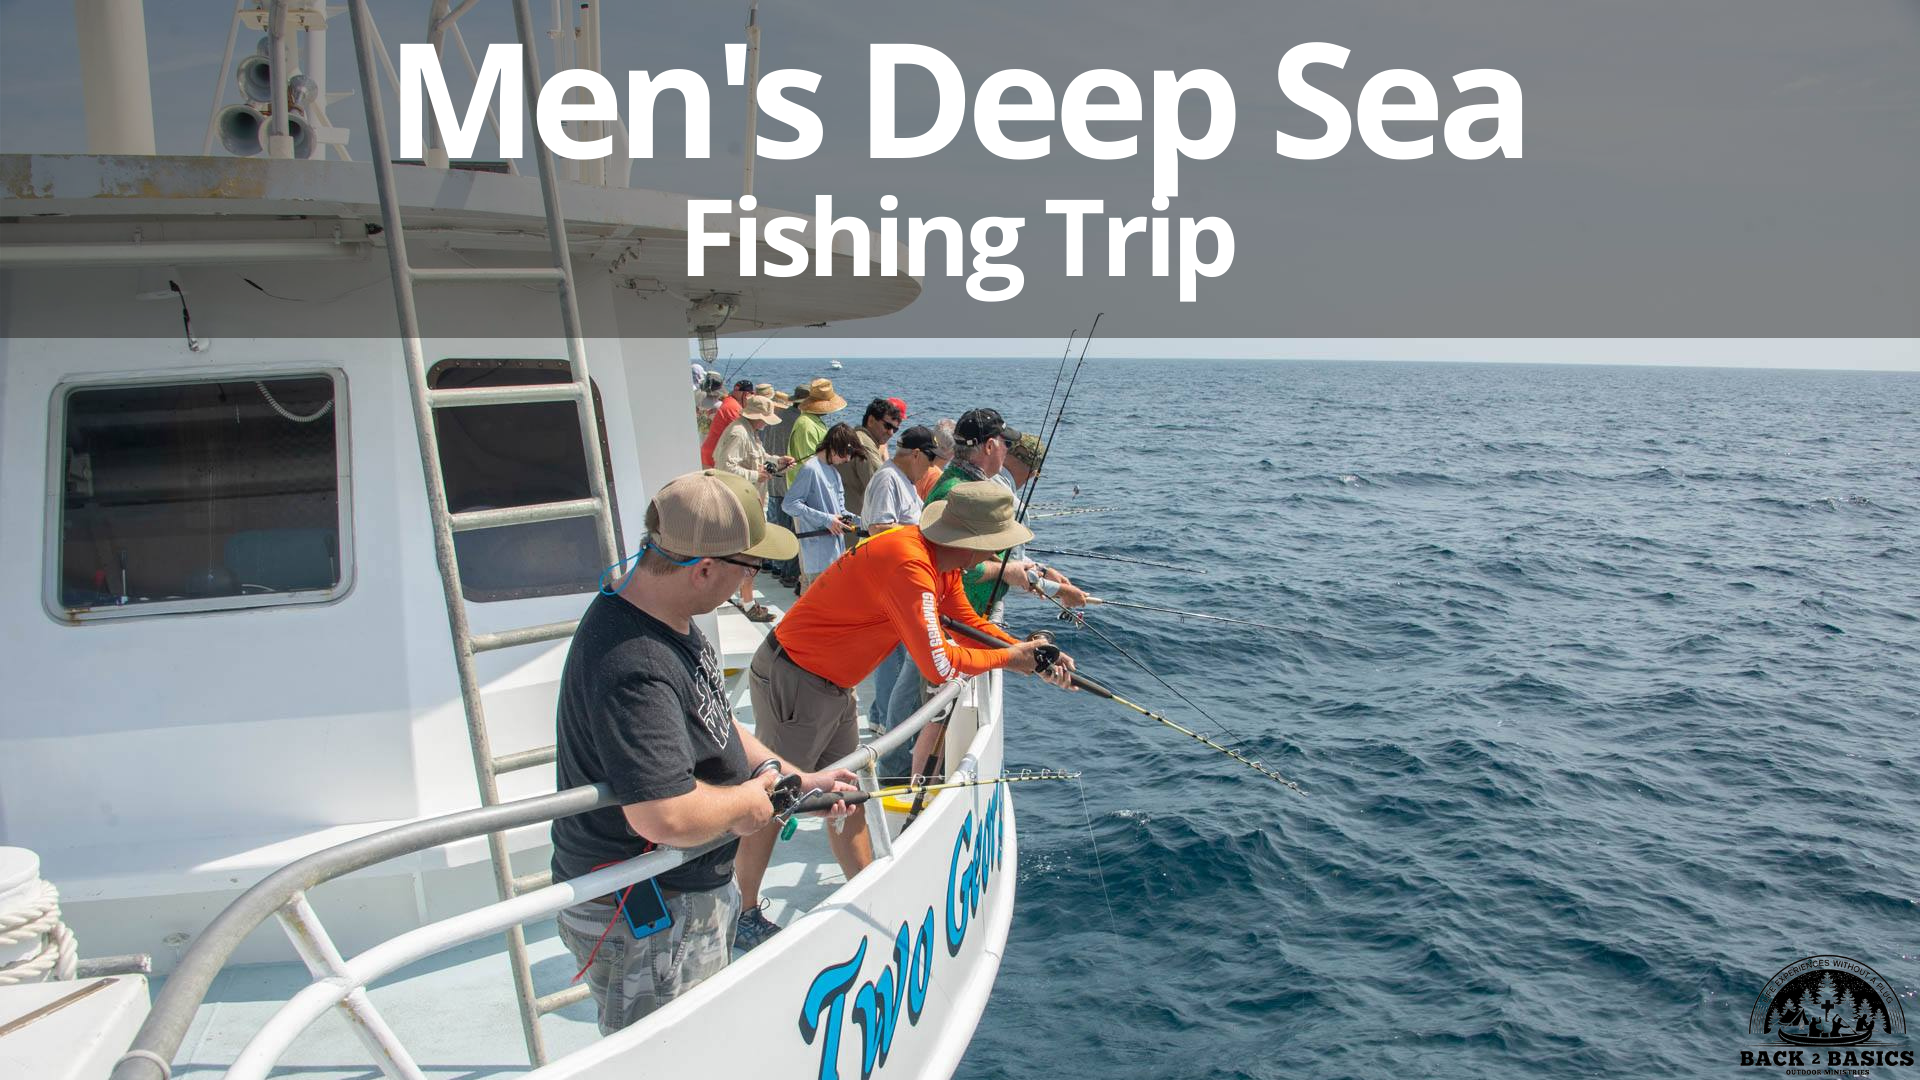 mens deep sea fishing trip, back2basics outdoor ministries